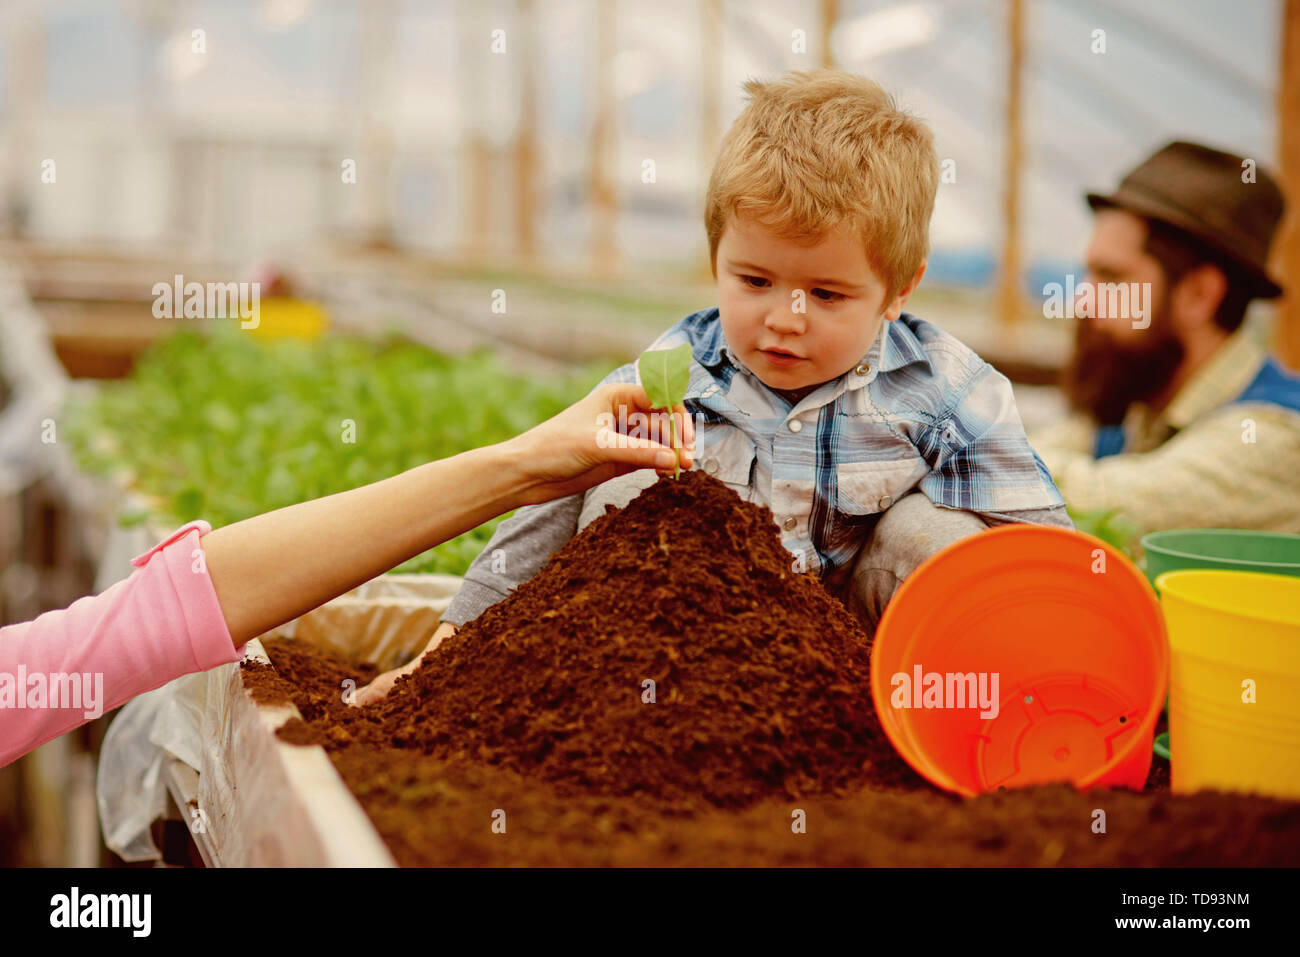 family values. family in greenhouse. happy family values. family values concept. values and trust - Stock Image